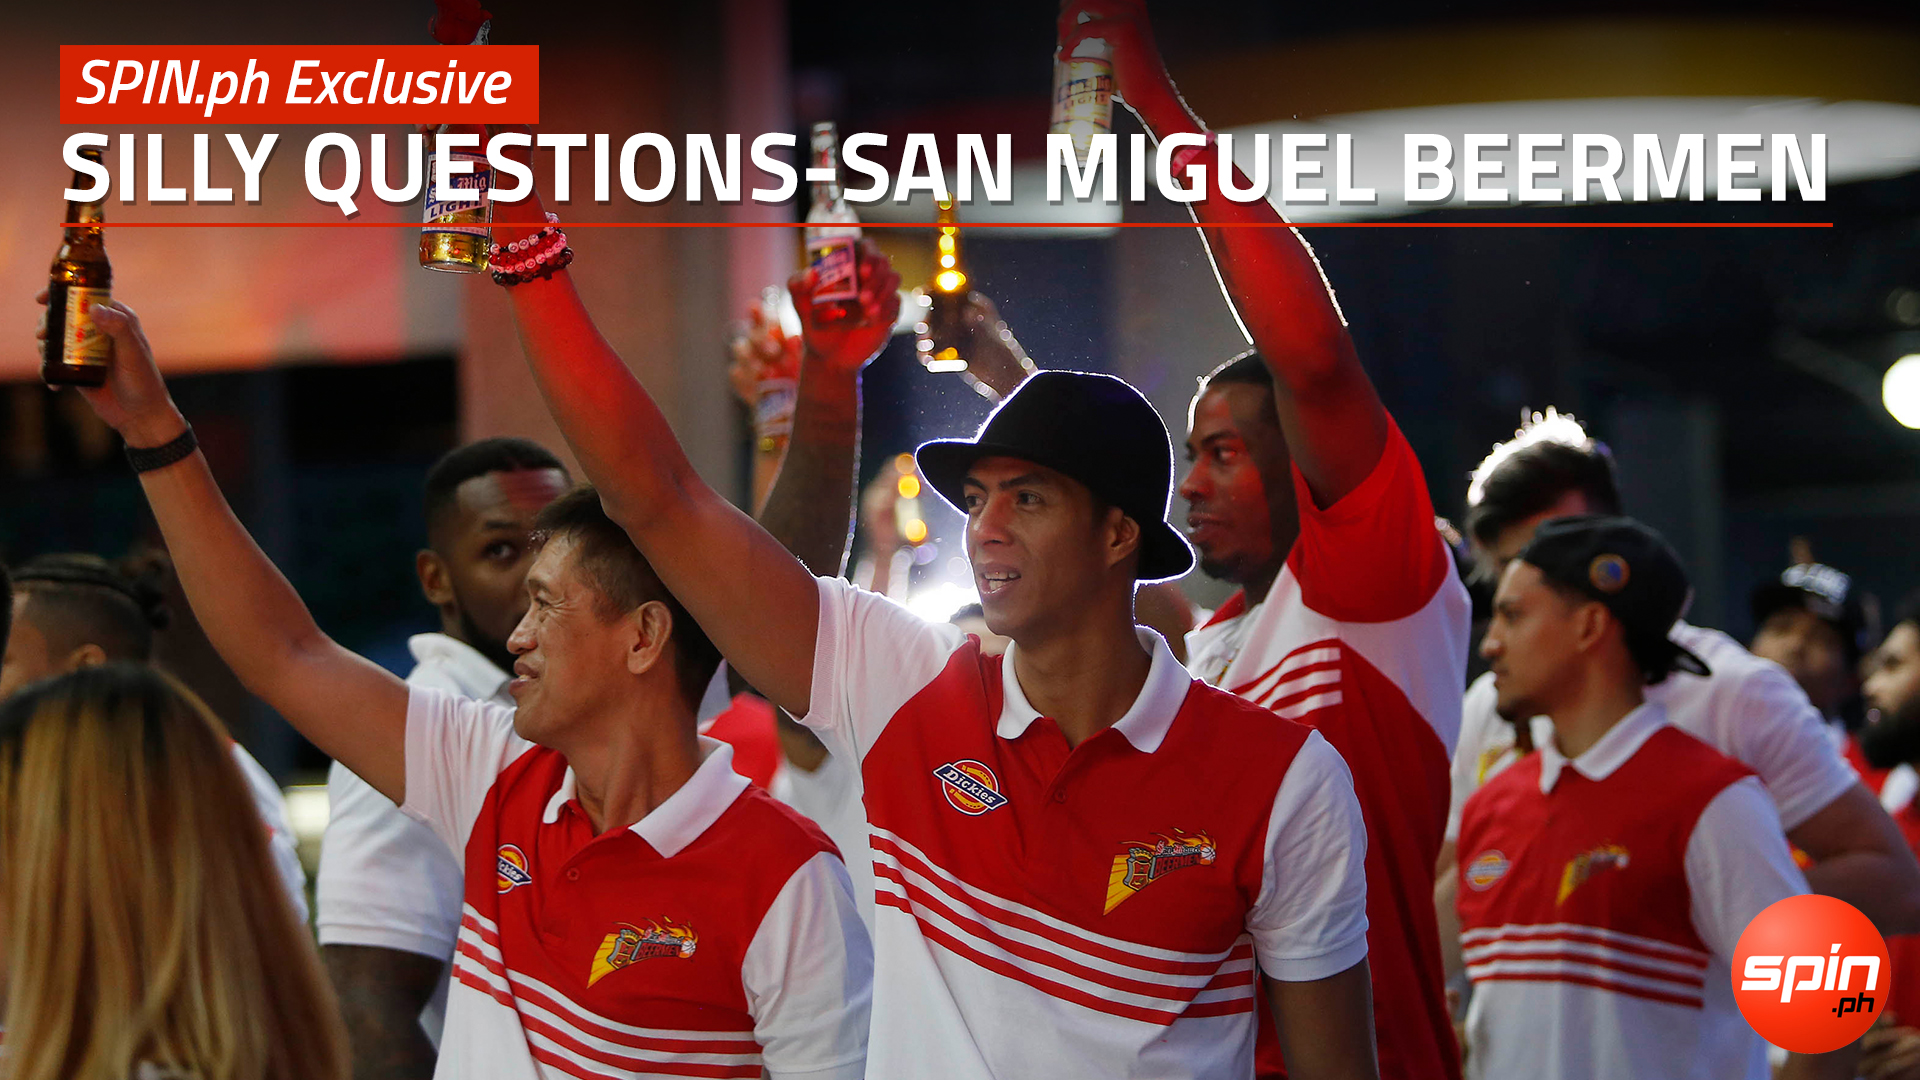 SPIN.ph Exclusive: Silly Questions - San Miguel Beermen